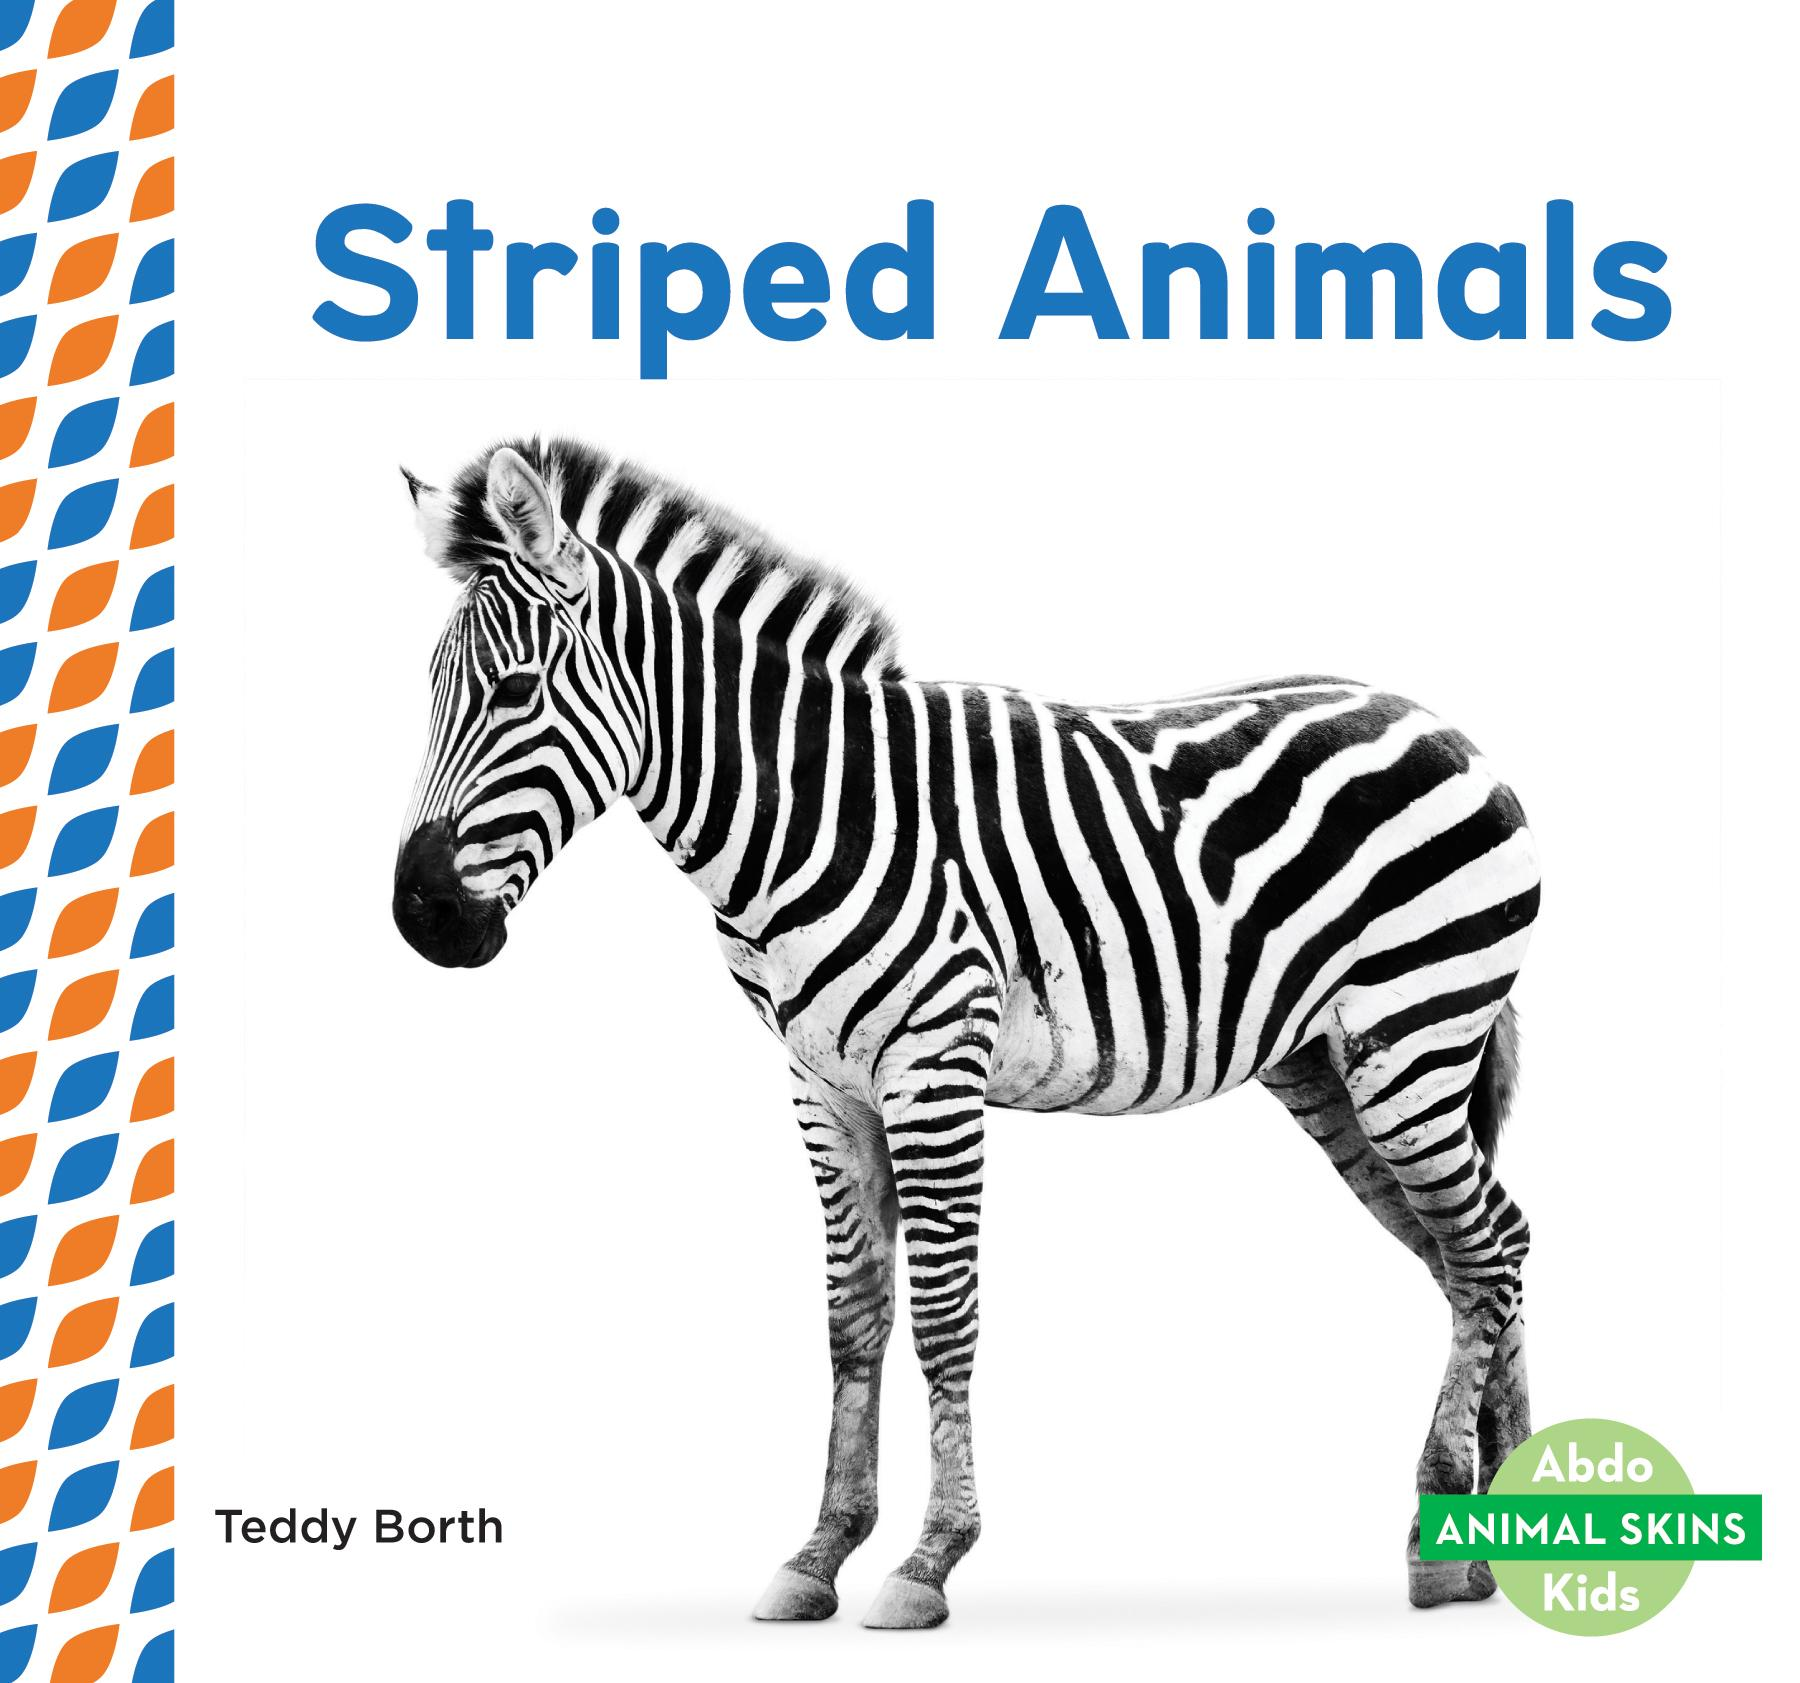 Striped Animals